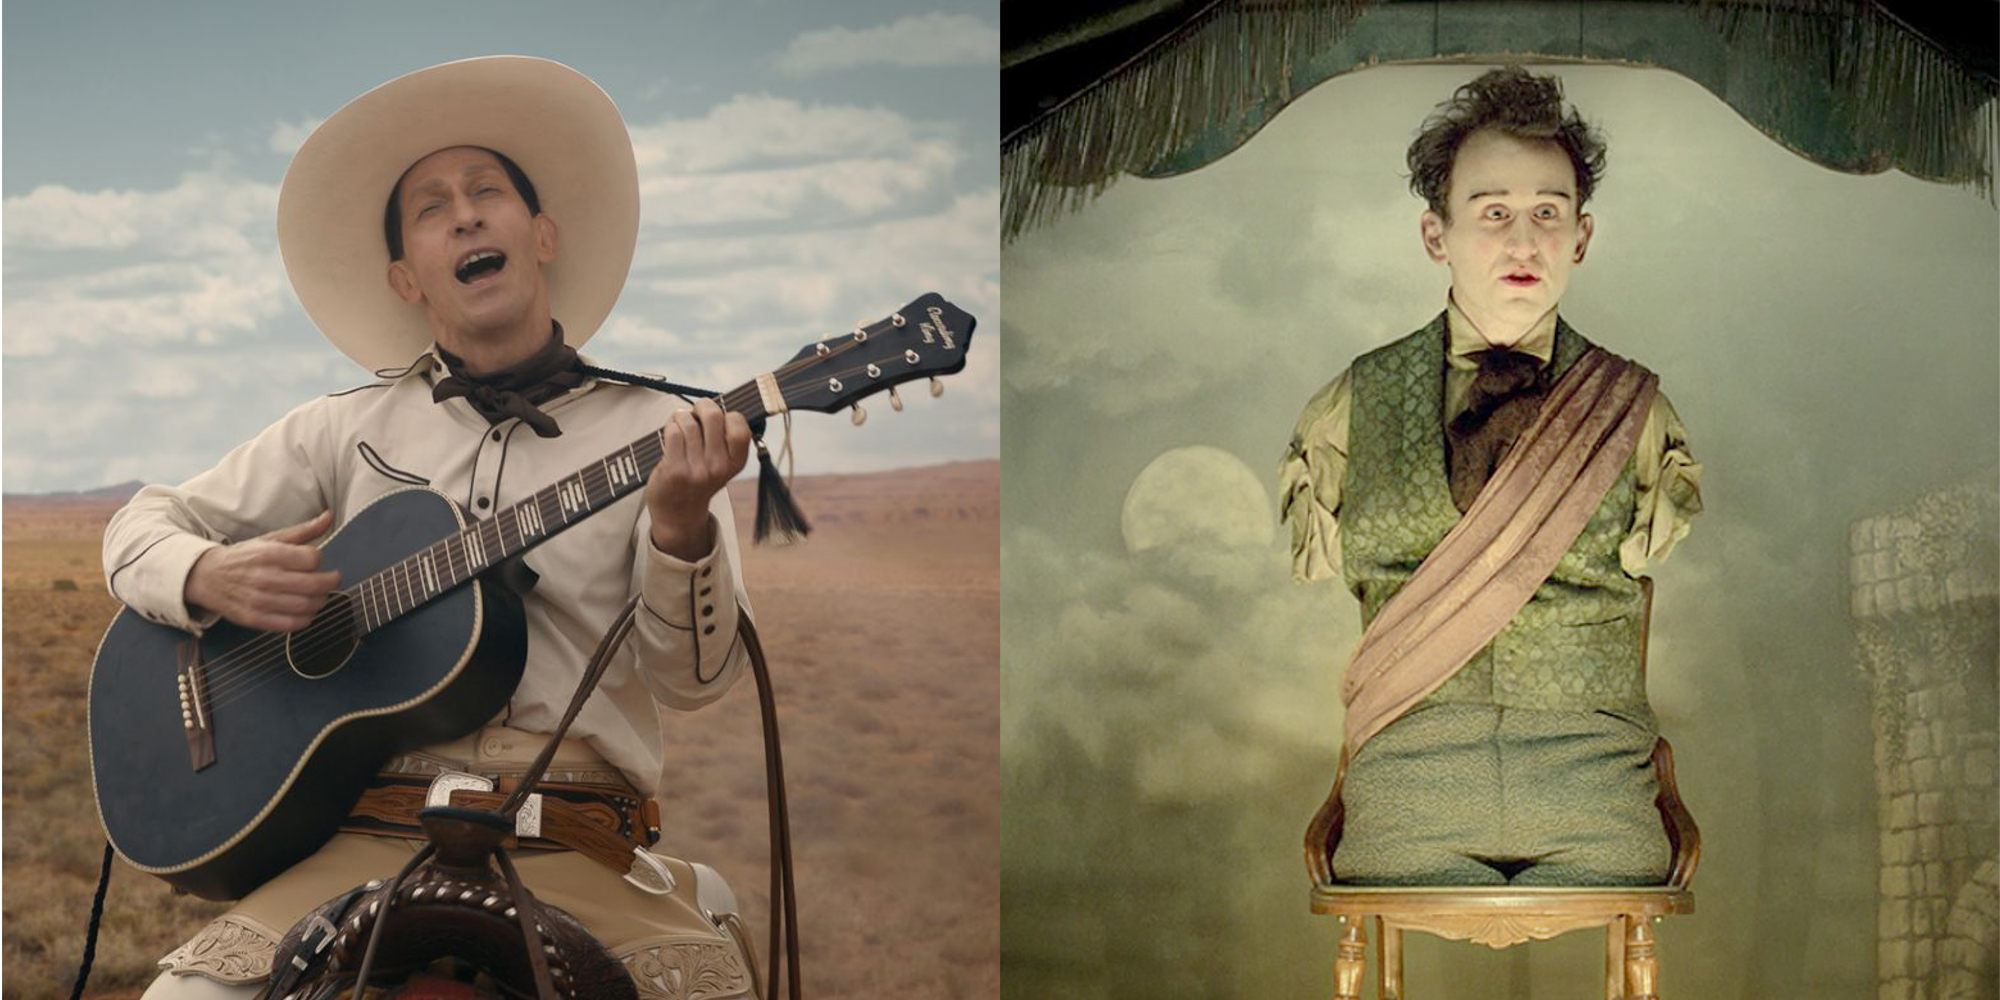 the 6 segments of the ballad of buster scruggs, ranked - freshly